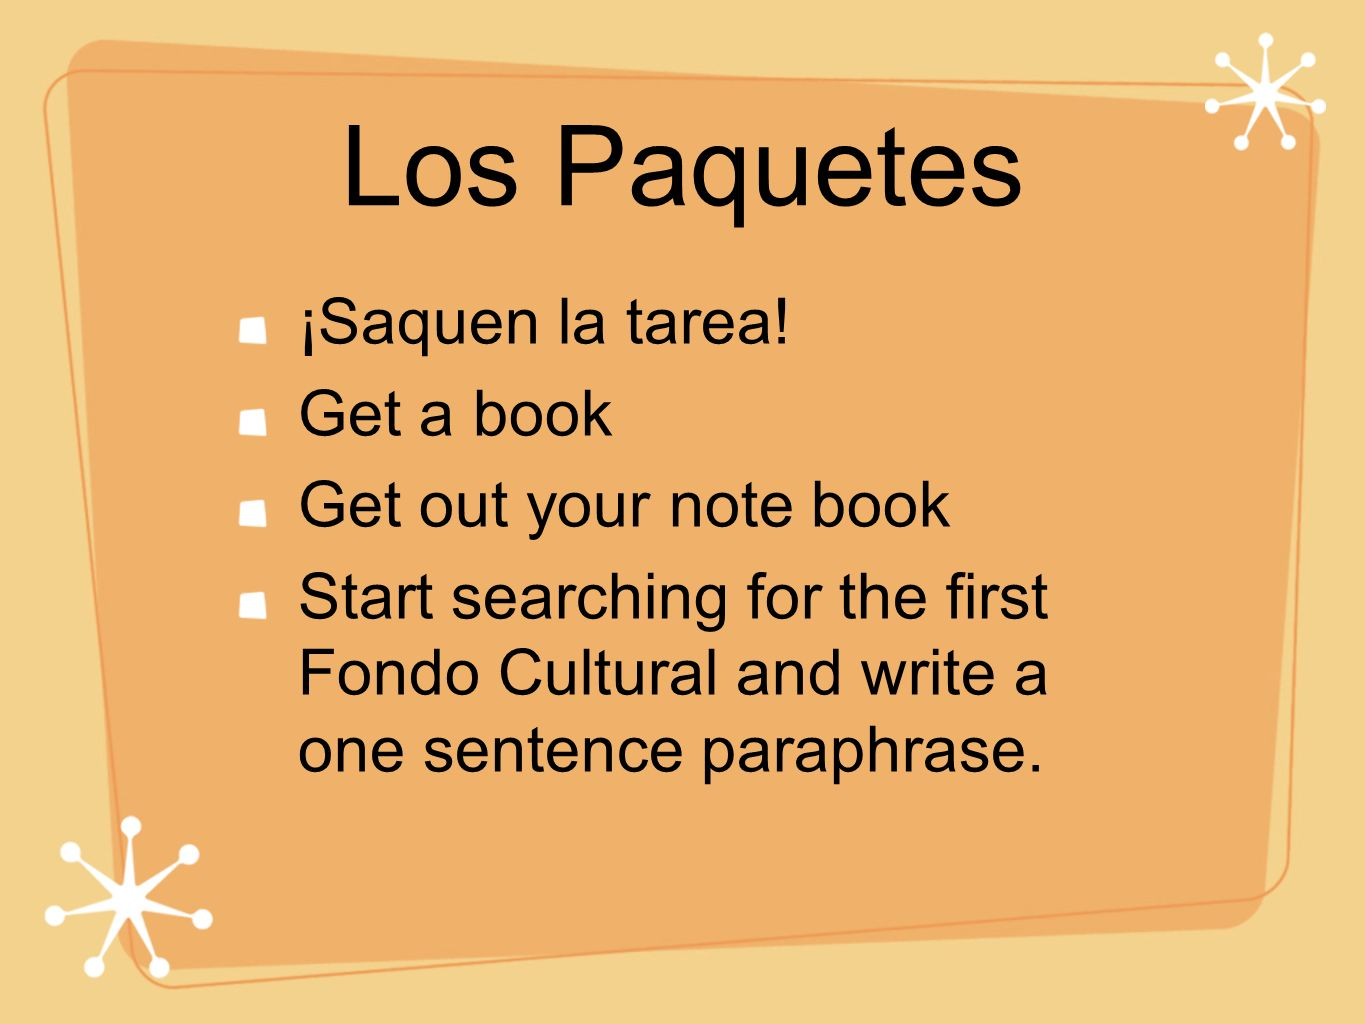 Los Paquetes ¡Saquen la tarea! Get a book Get out your note book Start searching for the first Fondo Cultural and write a one sentence paraphrase.